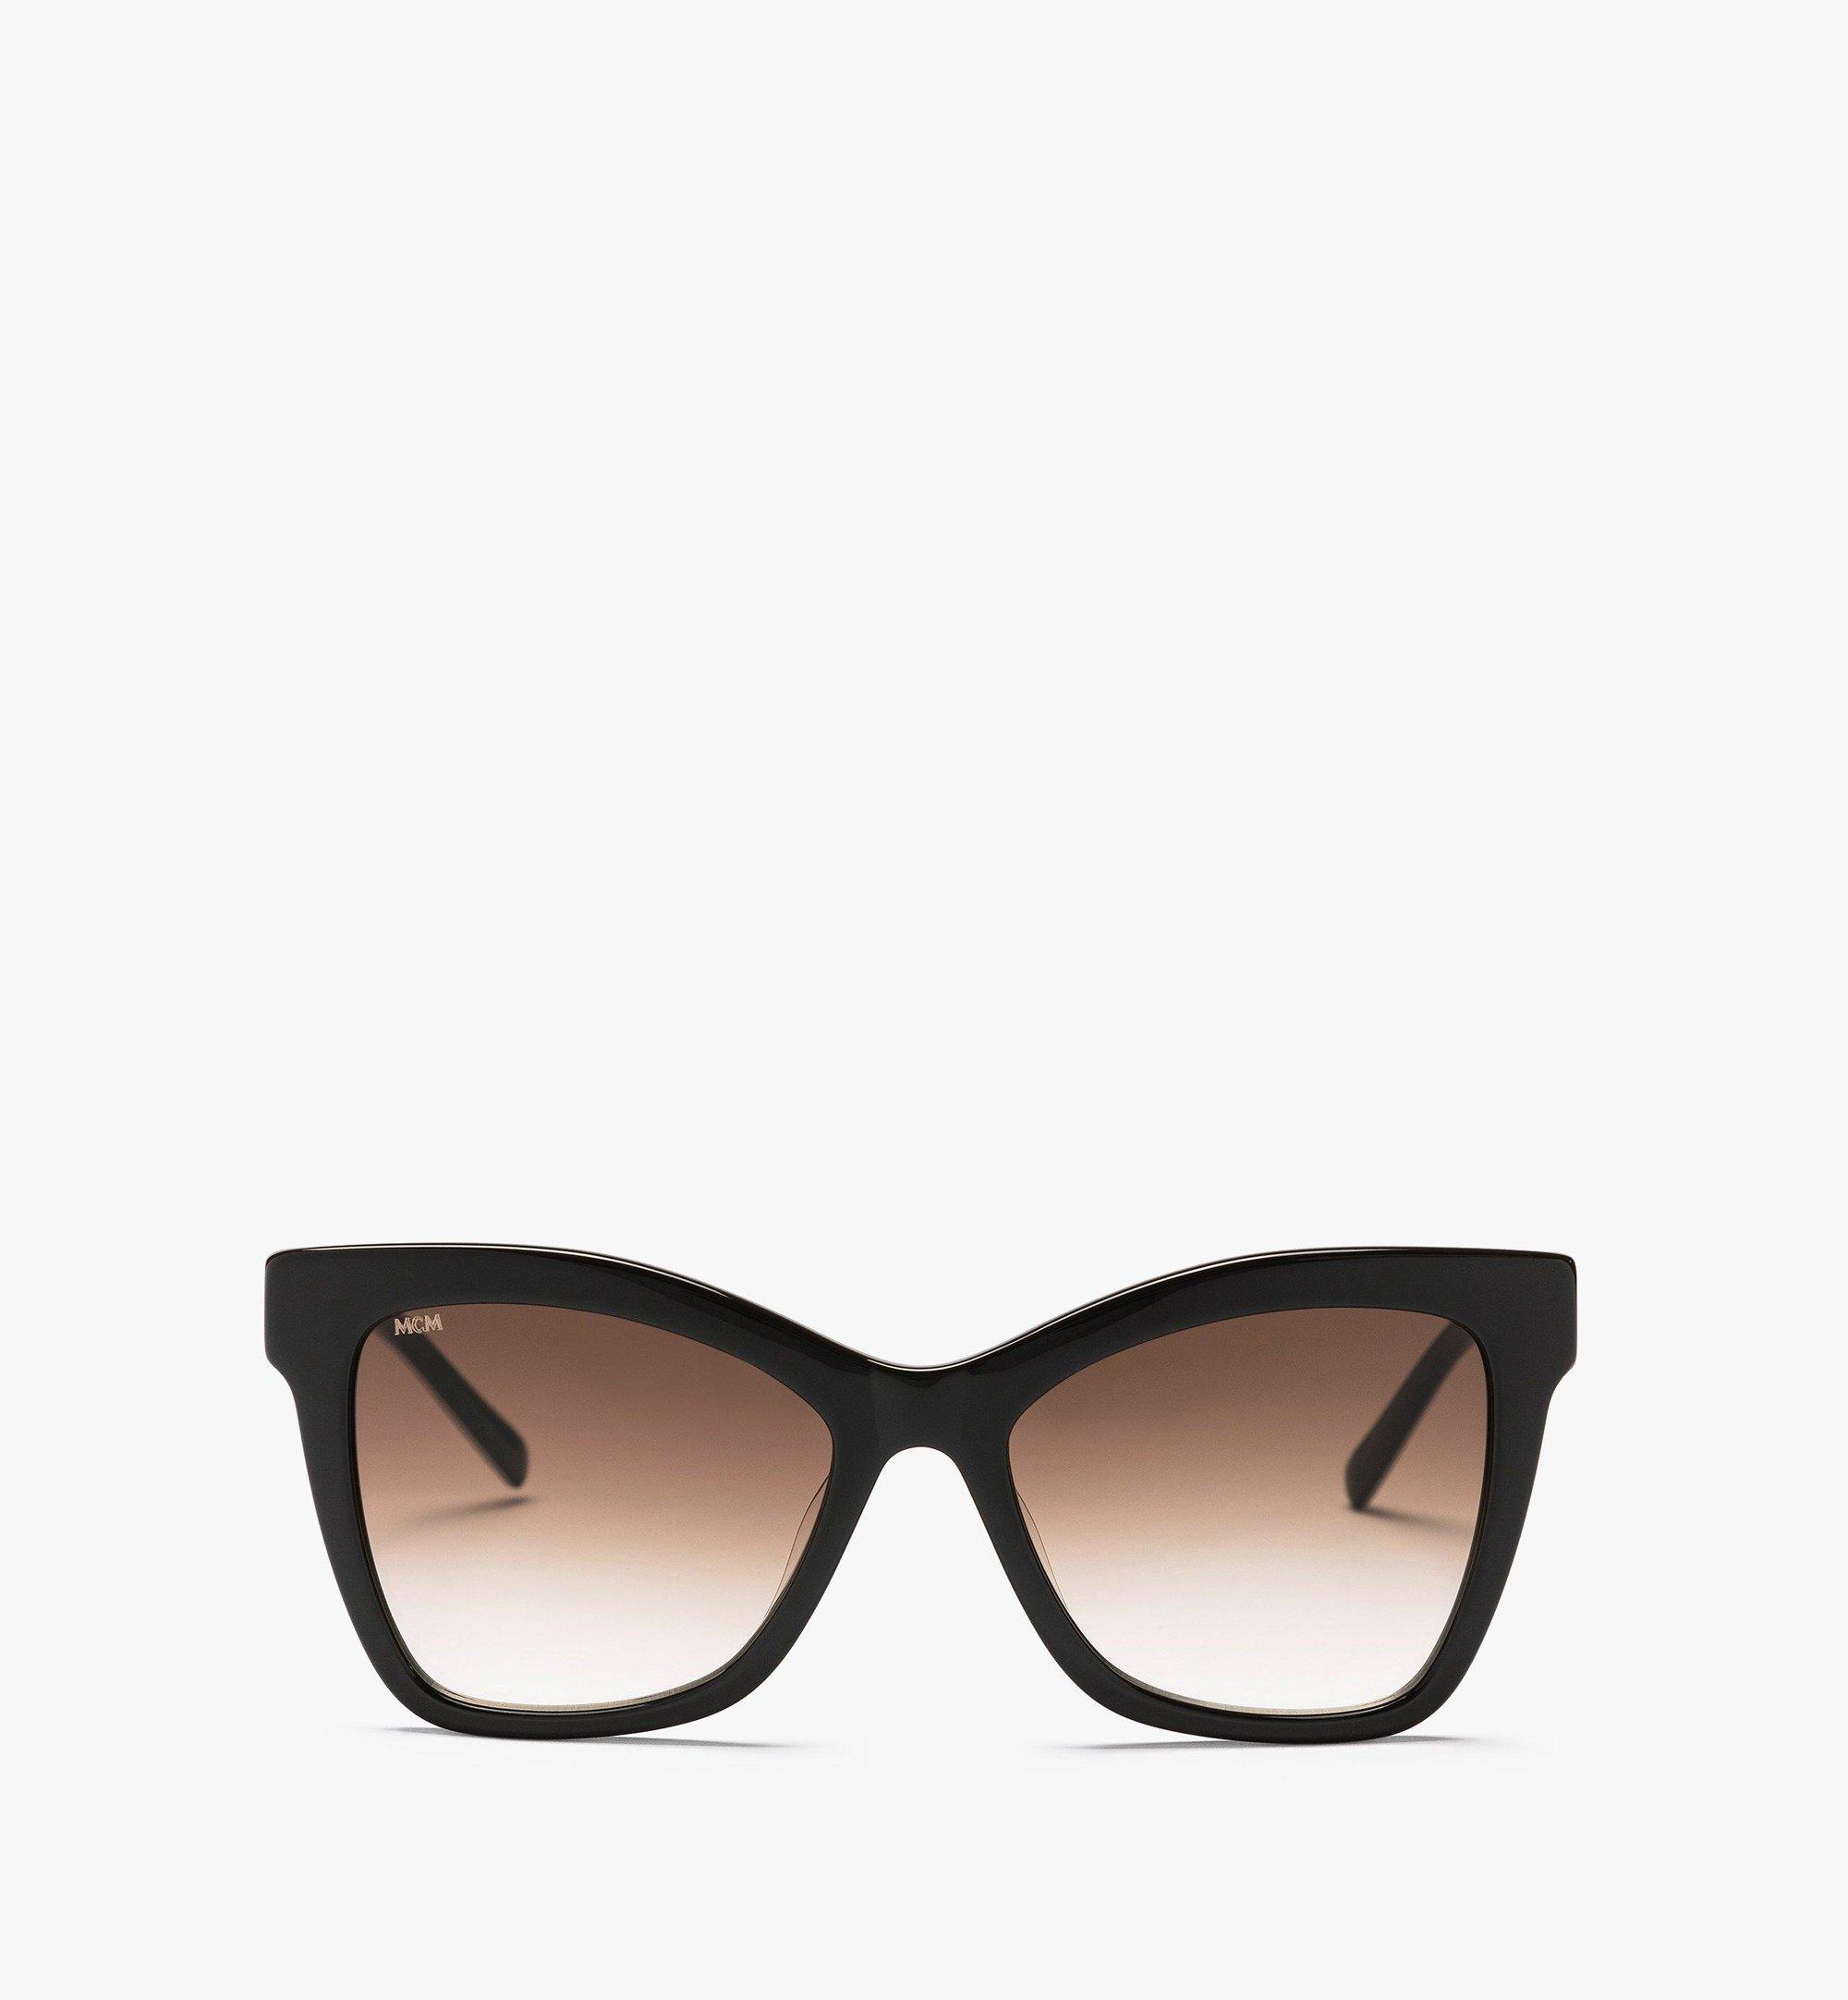 MCM MCM712S Butterfly Sunglasses Brown MEGBAMM08NR001 Alternate View 1